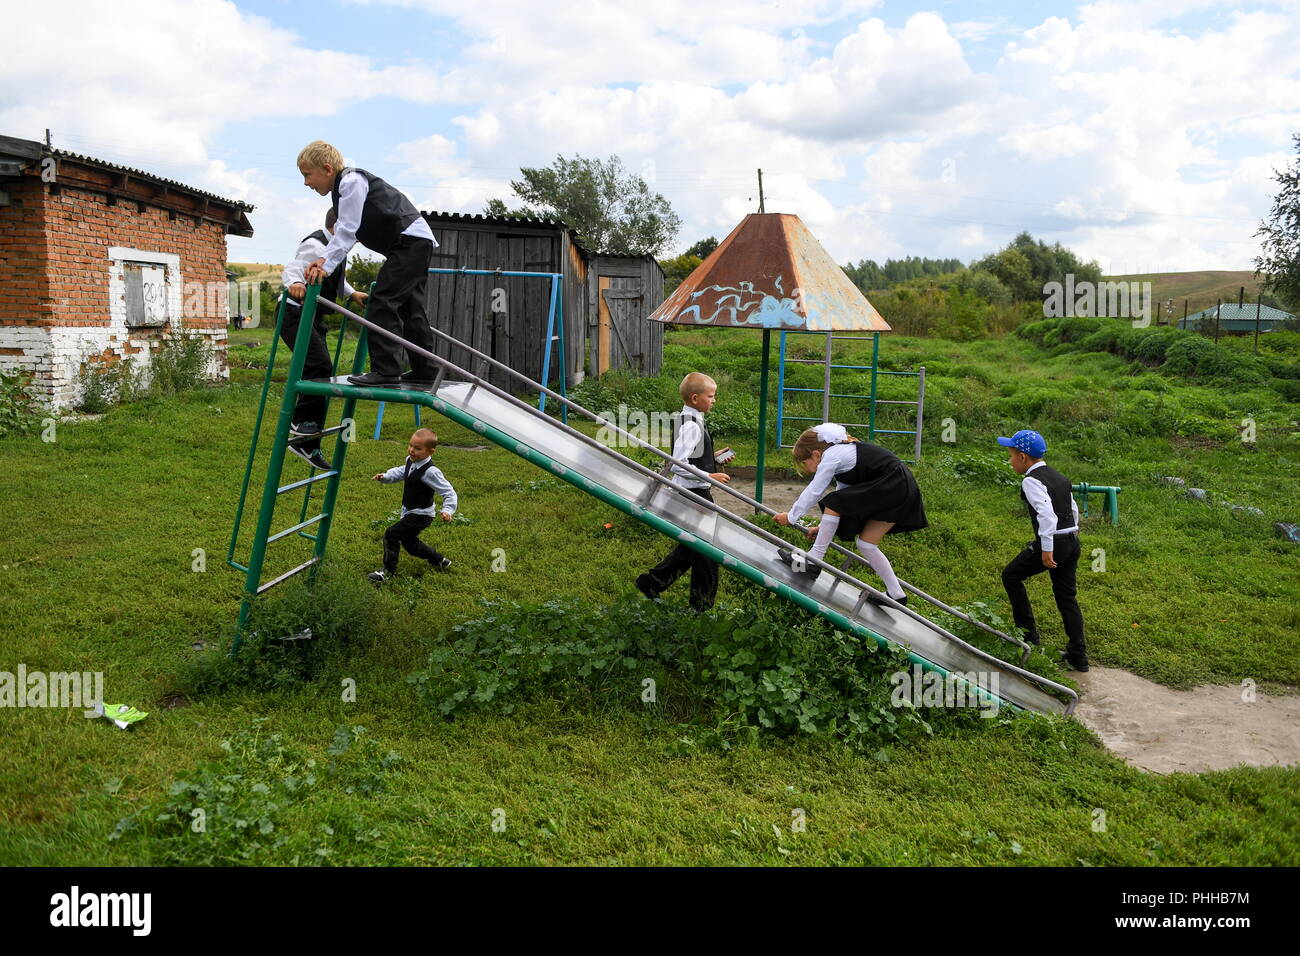 ALTAI TERRITORY, RUSSIA – SEPTEMBER 1, 2018: Children on a